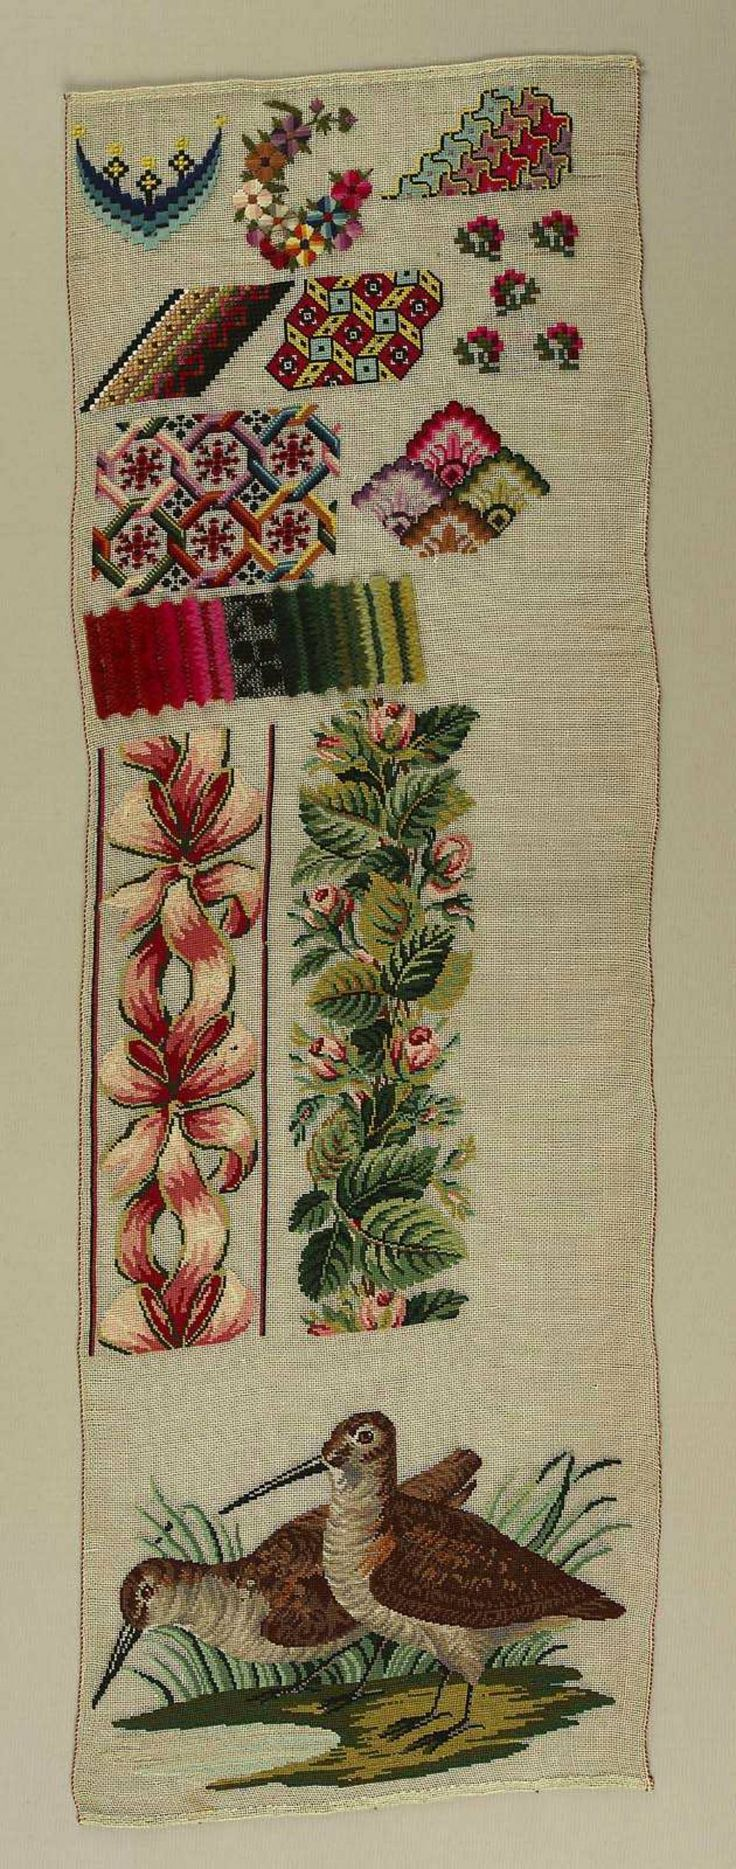 19th Century Berlin WoolWork Sampler Dated Around 1840s